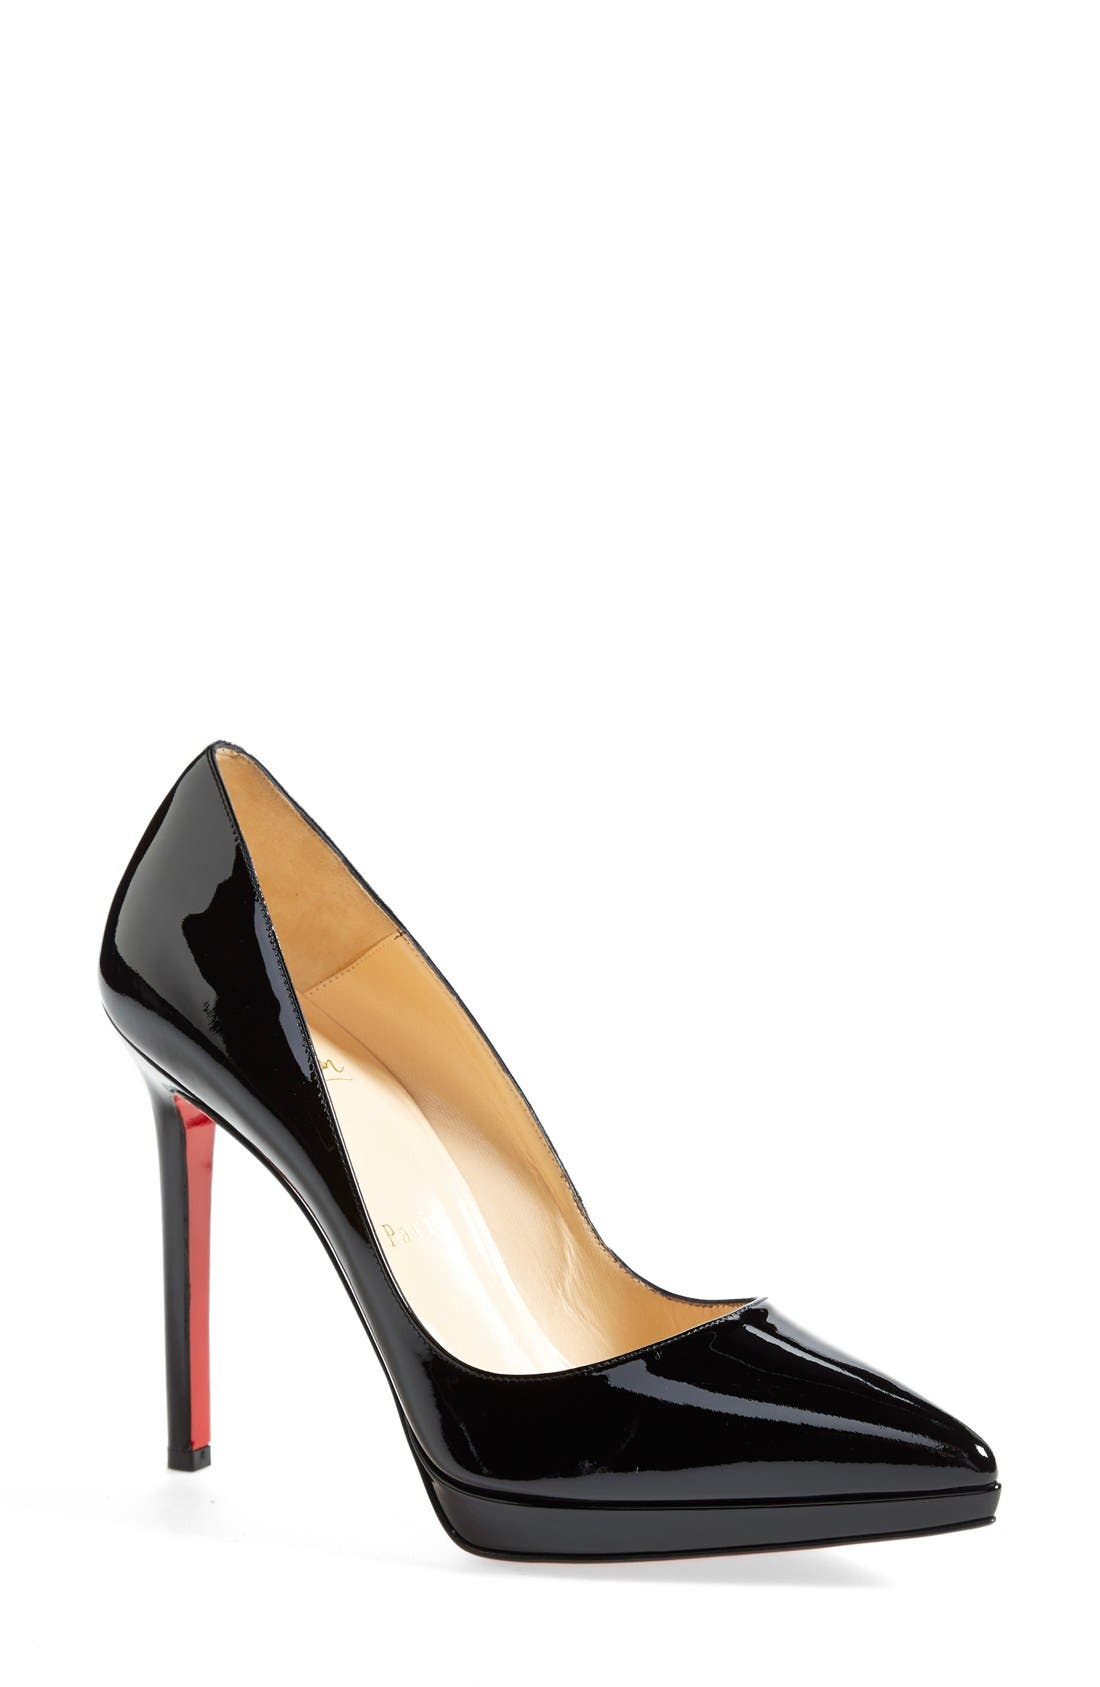 'Pigalle Plato' Pointy Toe Pump,                             Main thumbnail 1, color,                             001